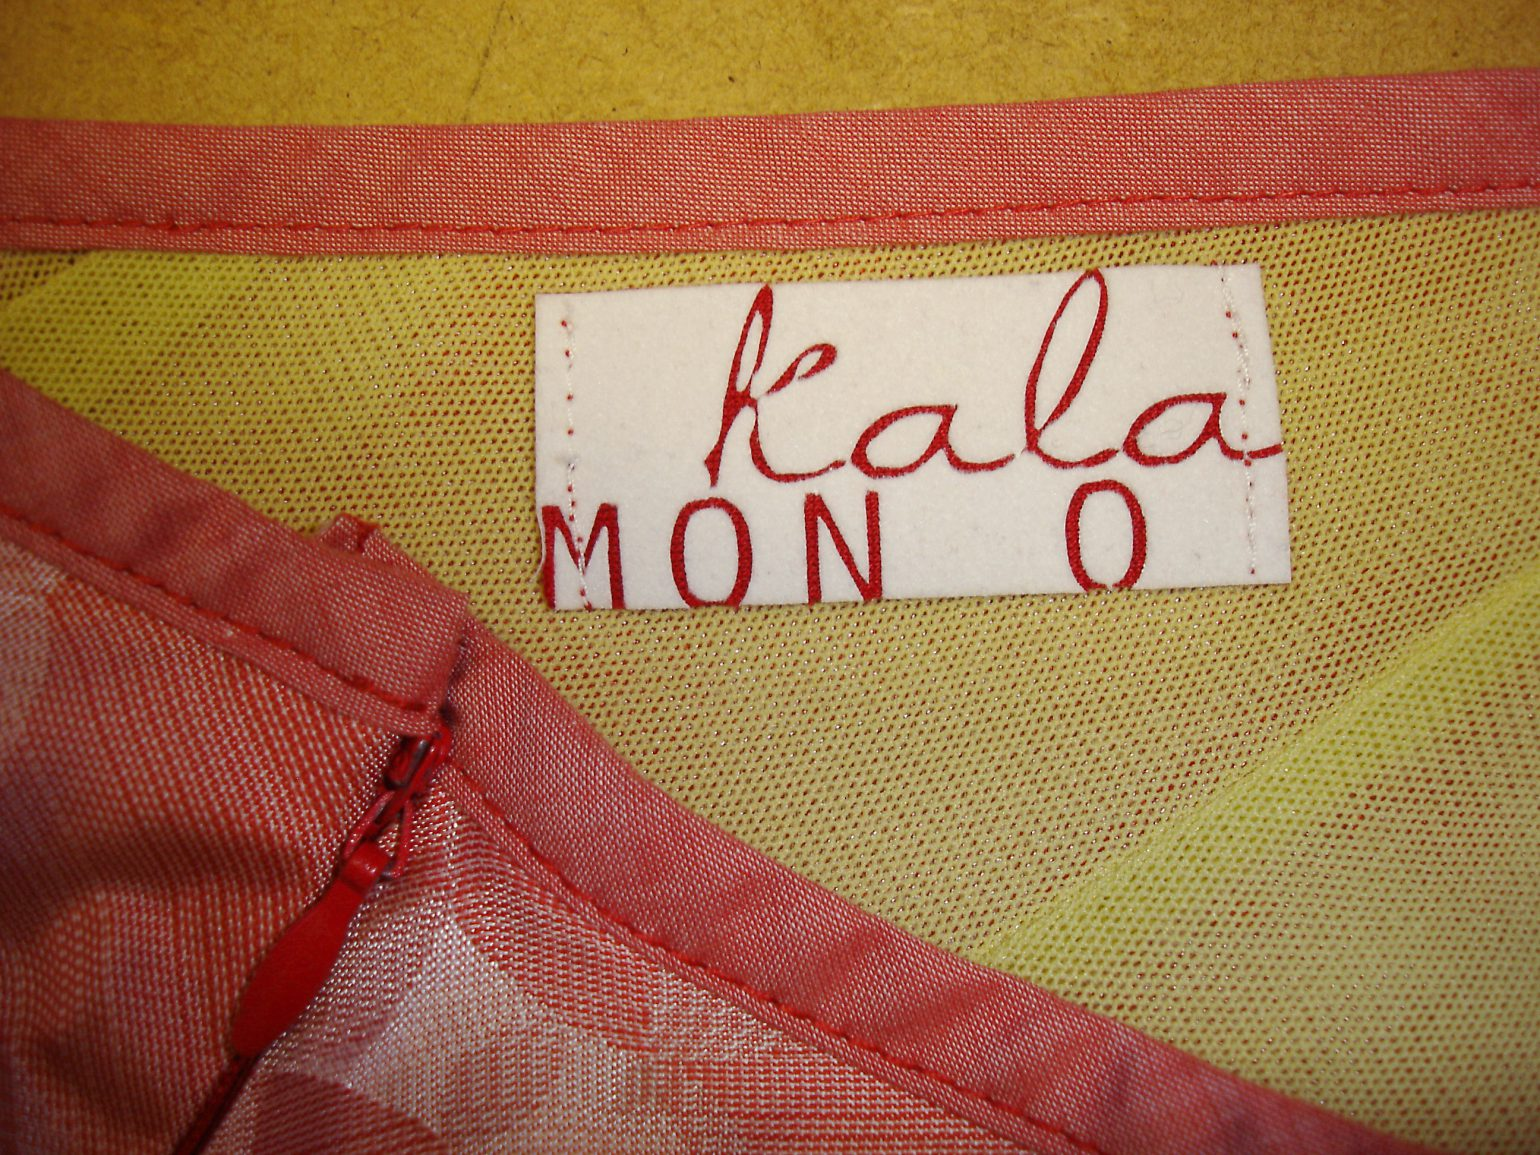 kalamono_label